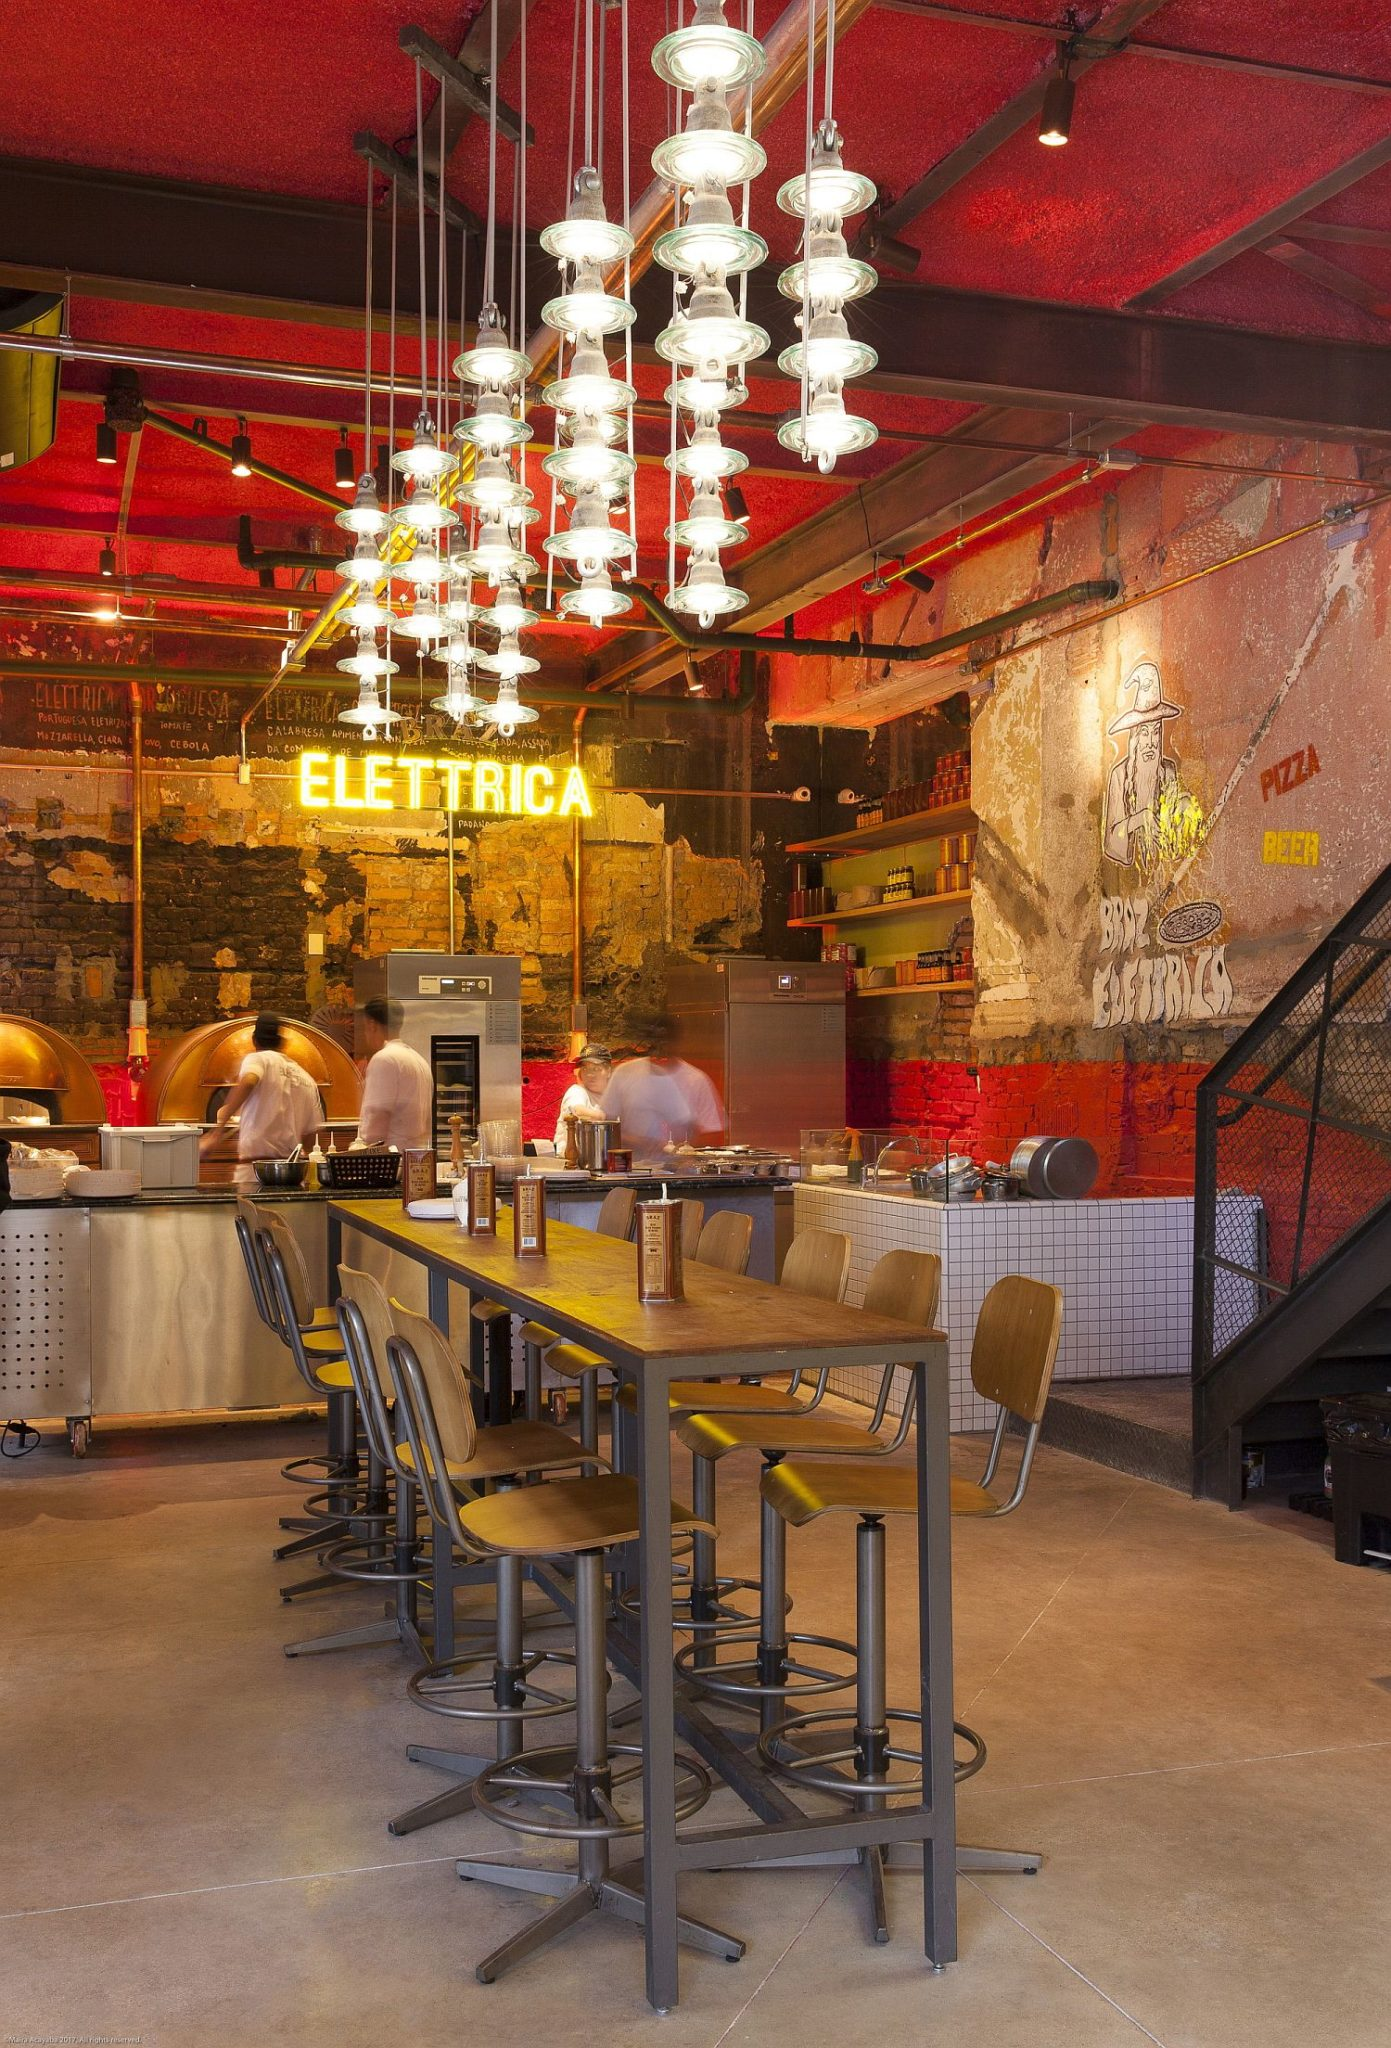 Illuminated-signs-on-the-all-dazzling-lighting-and-textured-walls-create-a-fabulous-pizza-house